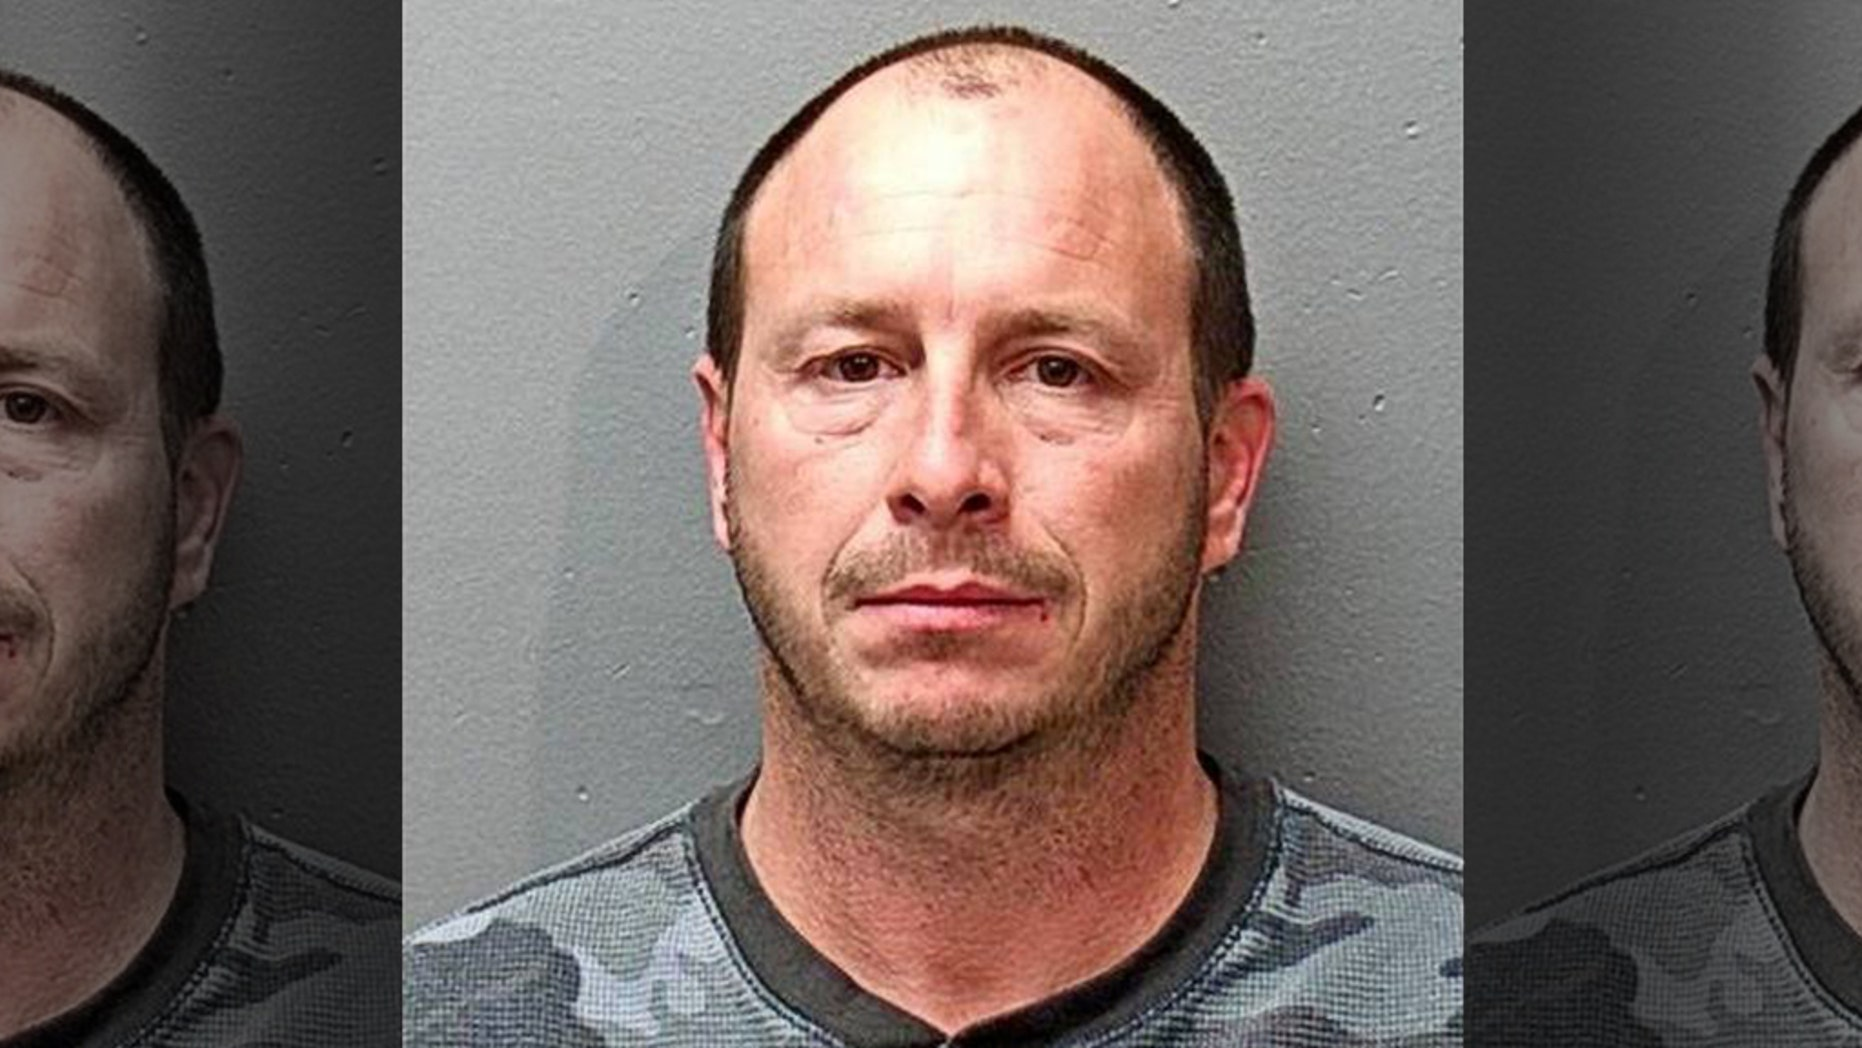 Gary Lykins, 44, was arrested after he allegedly shot his wife's laptop because she was playing music too loudly on it.